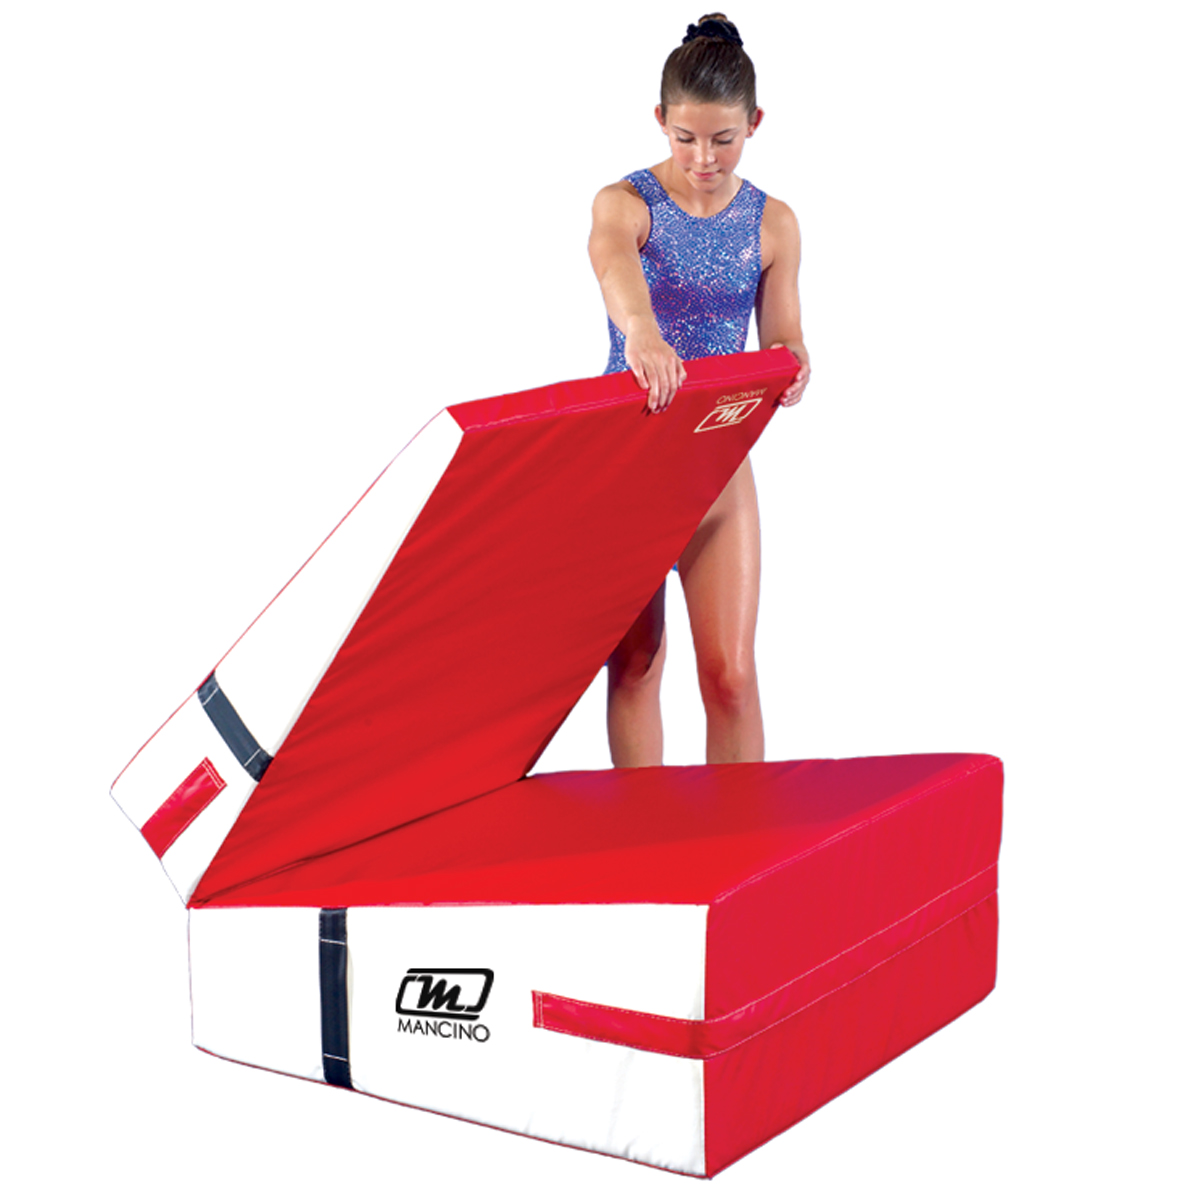 gymnast folding a red and white folding incline ramp mat - cheese wedge mats - mancino mats